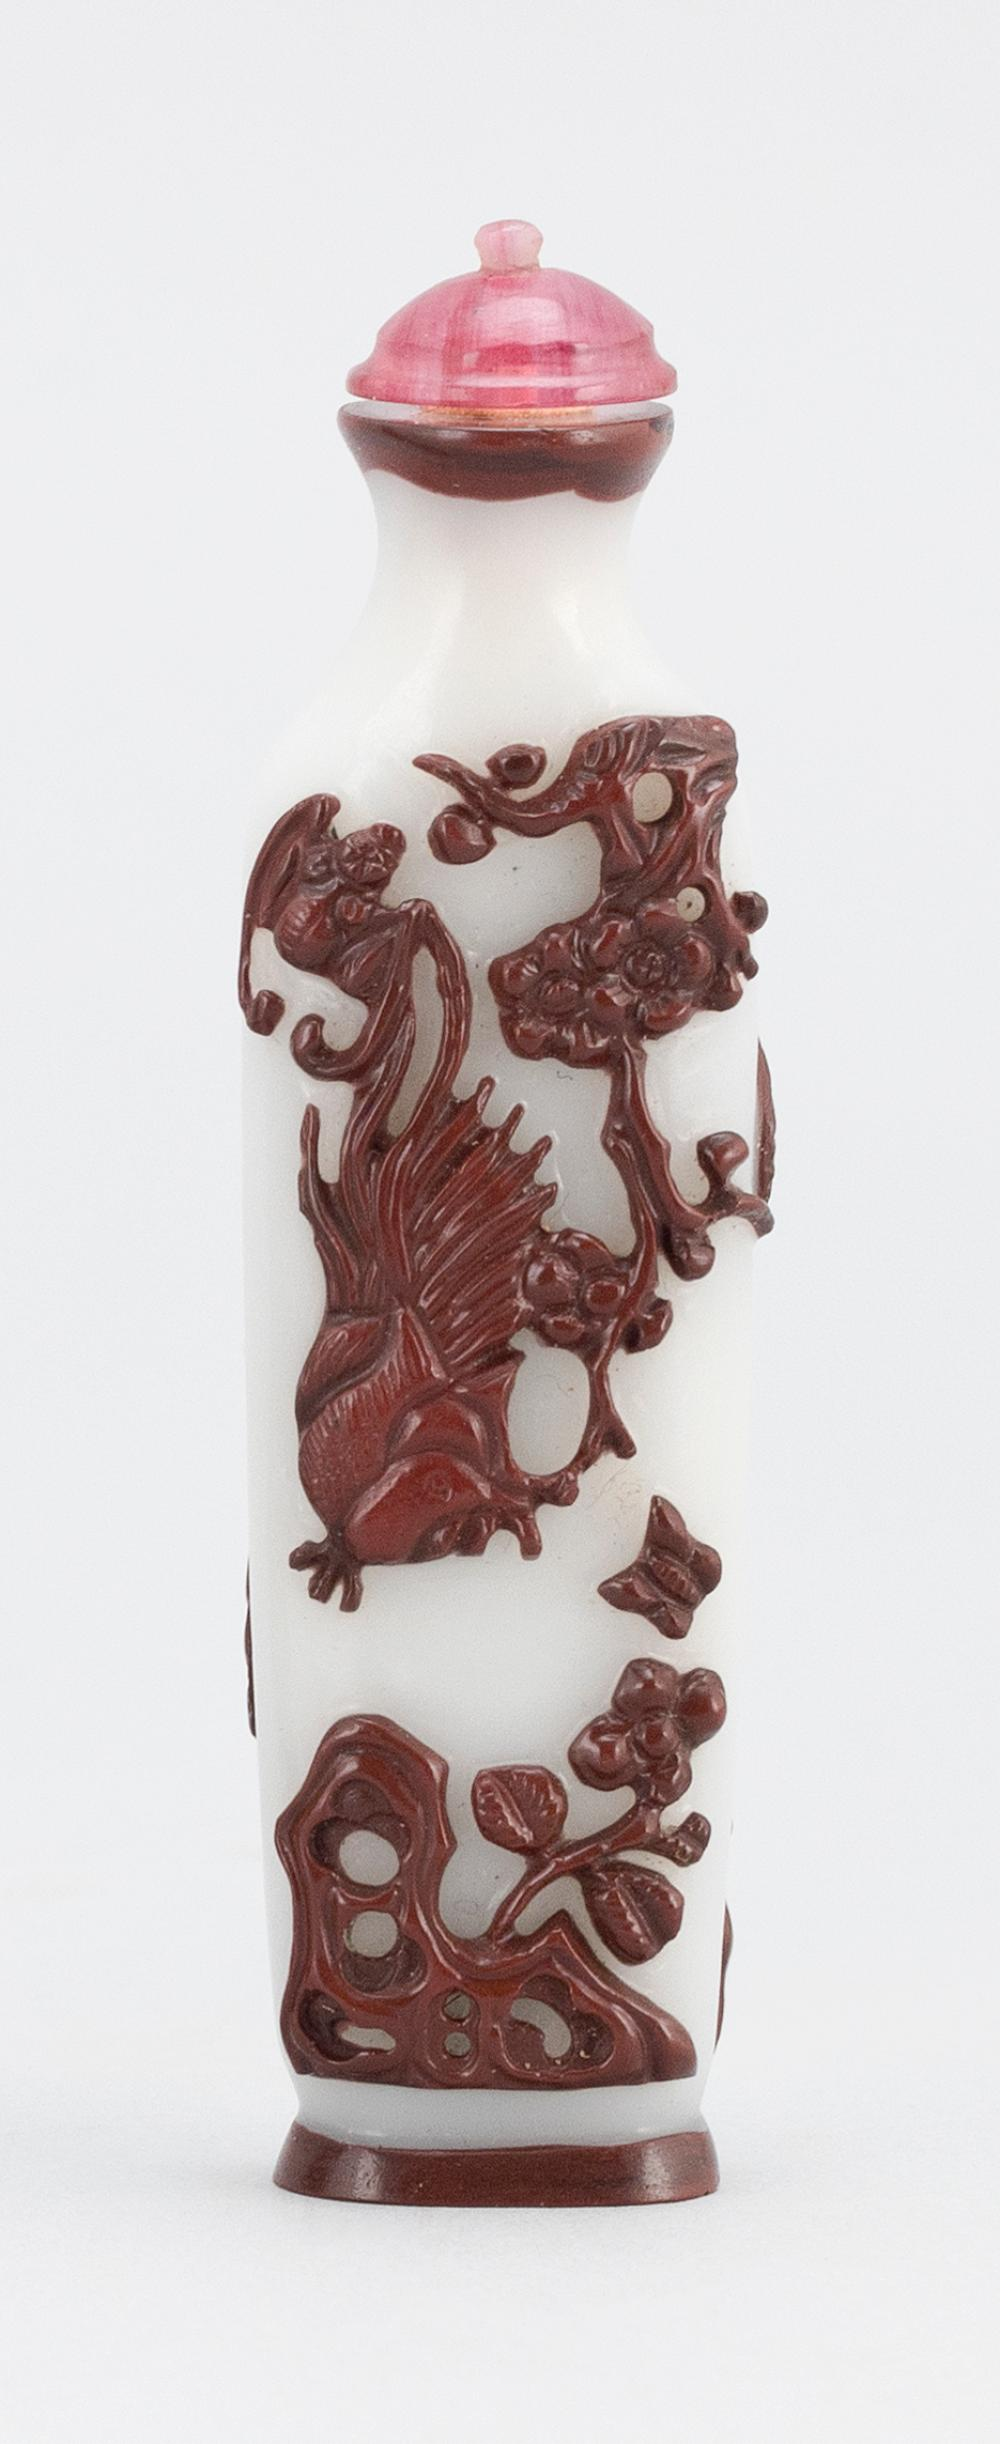 CHINESE BRICK RED ON WHITE OVERLAY GLASS SNUFF BOTTLE In amphora form, with a bird, bat and prunus design. Height 3.2